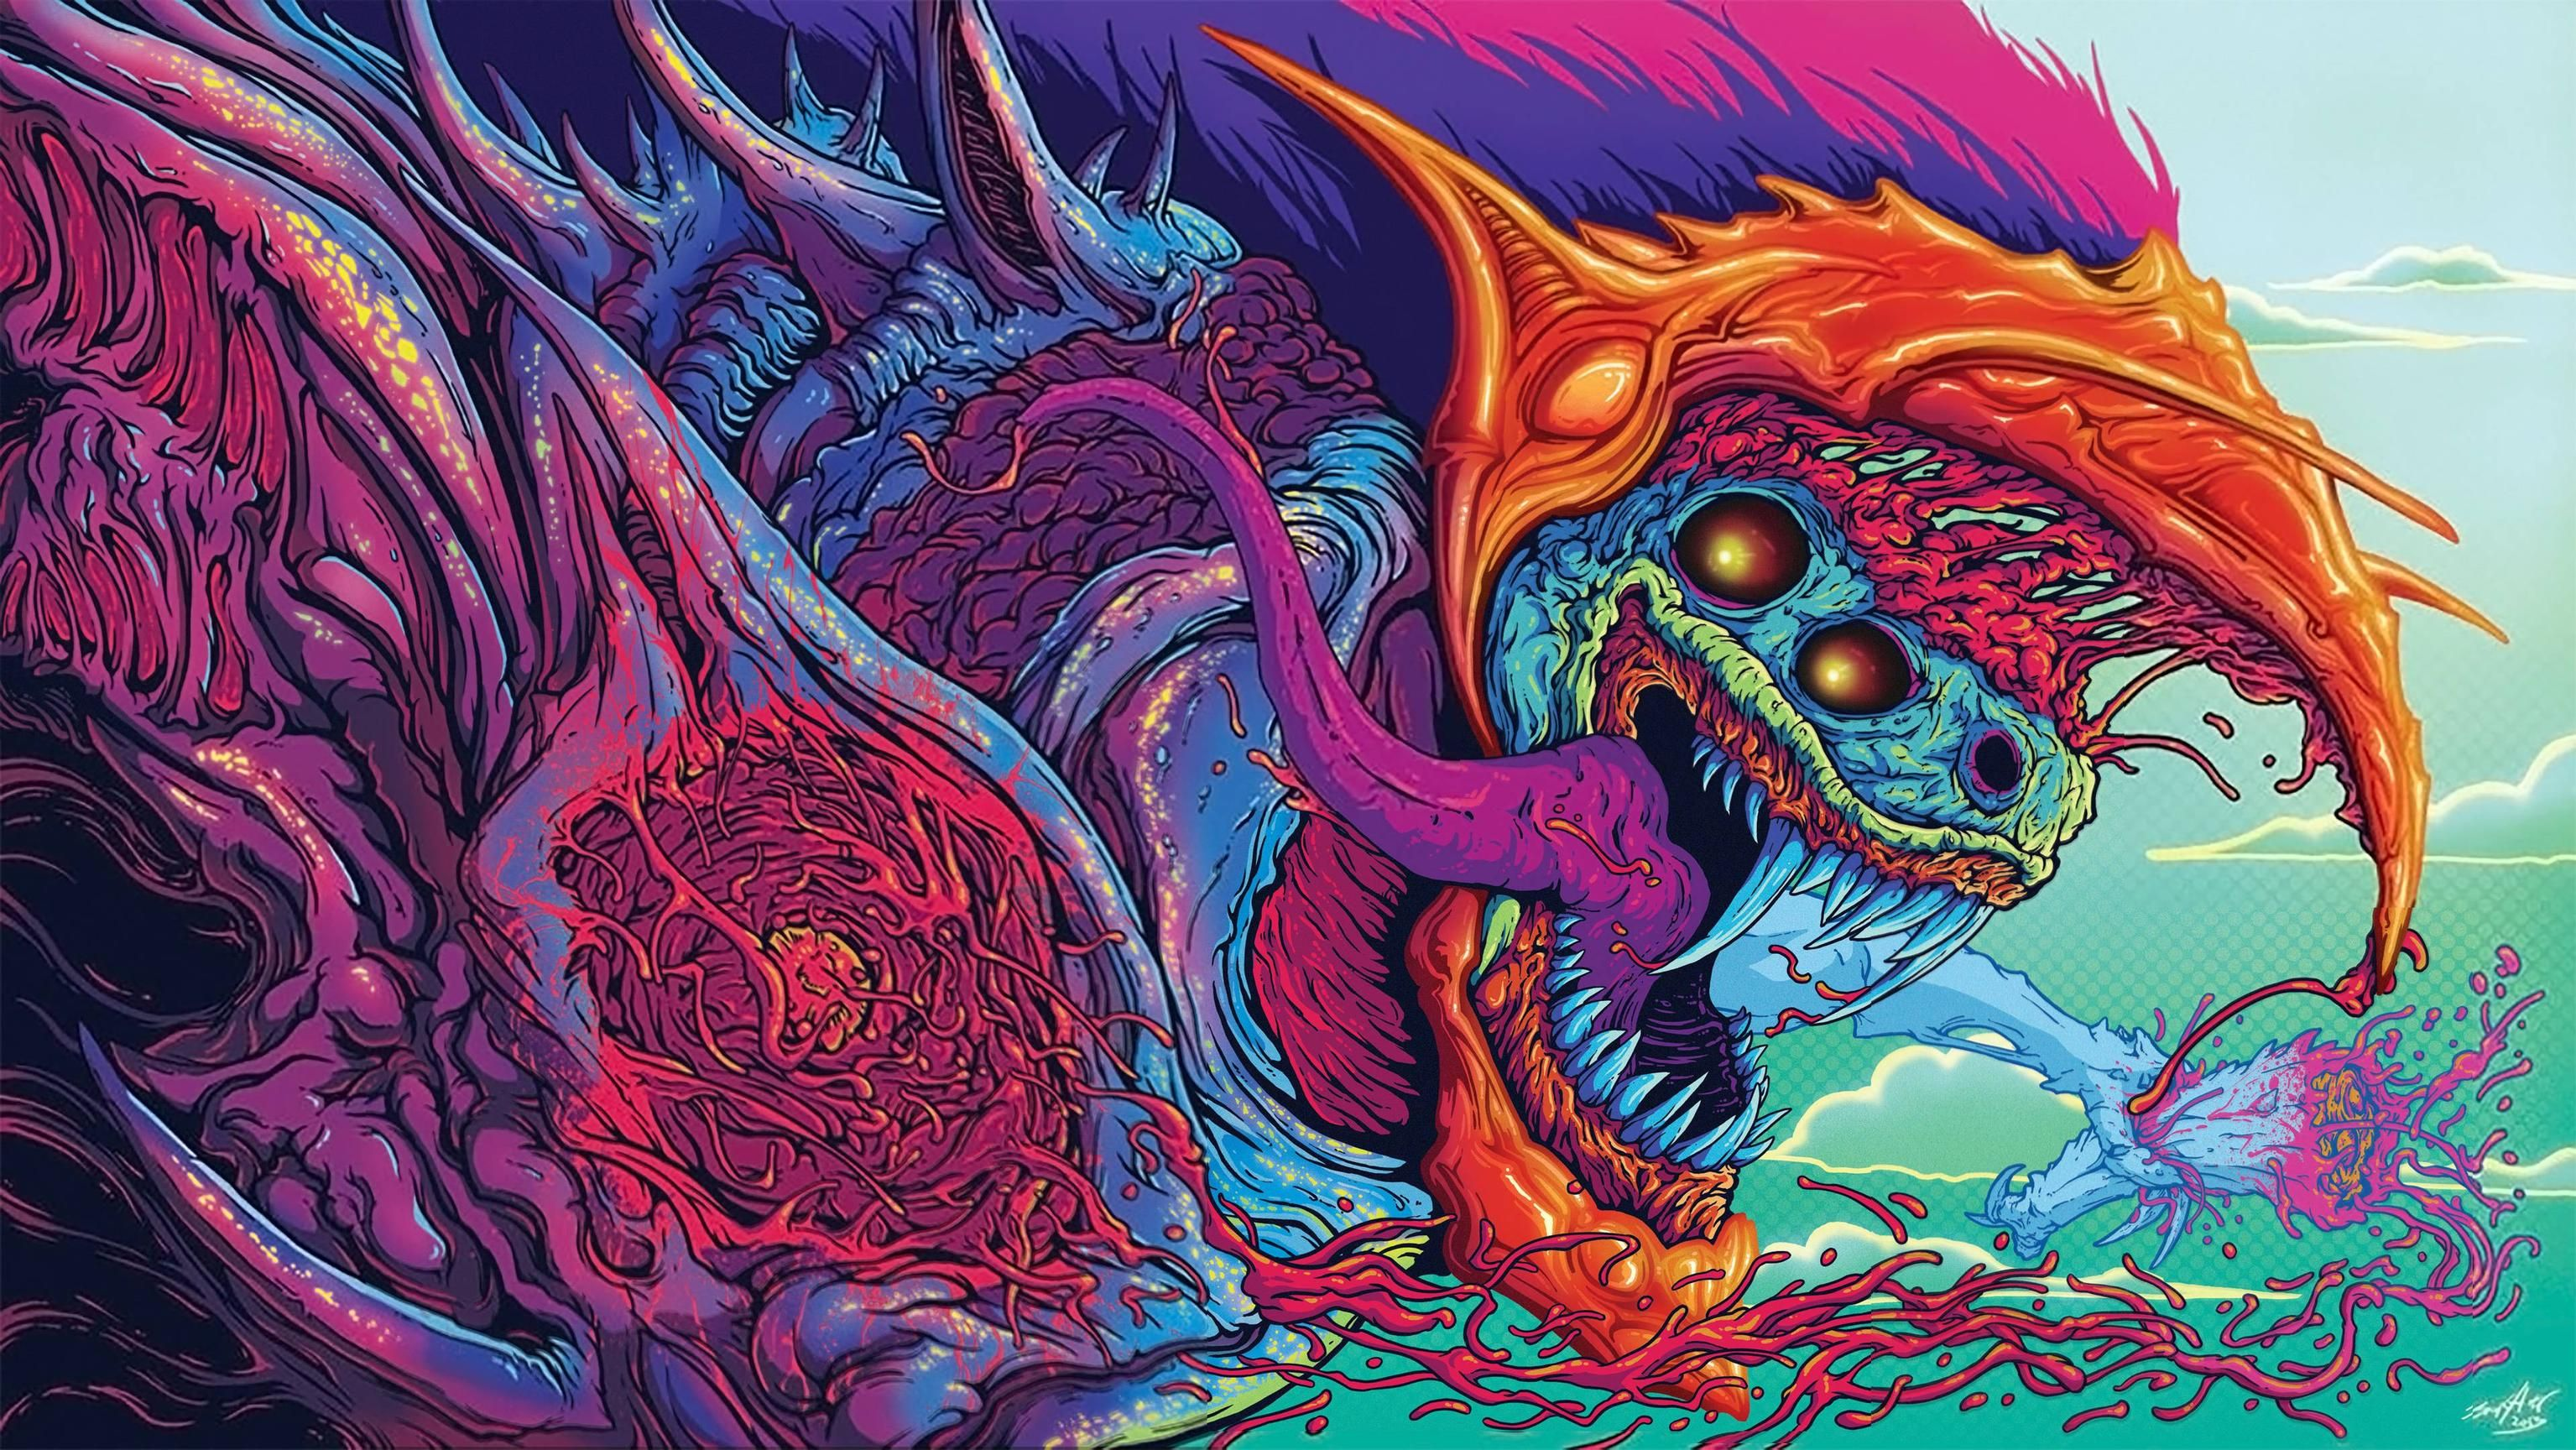 Csgo Hyper Beast Wallpaper 1080p Brock Hofer Google Search